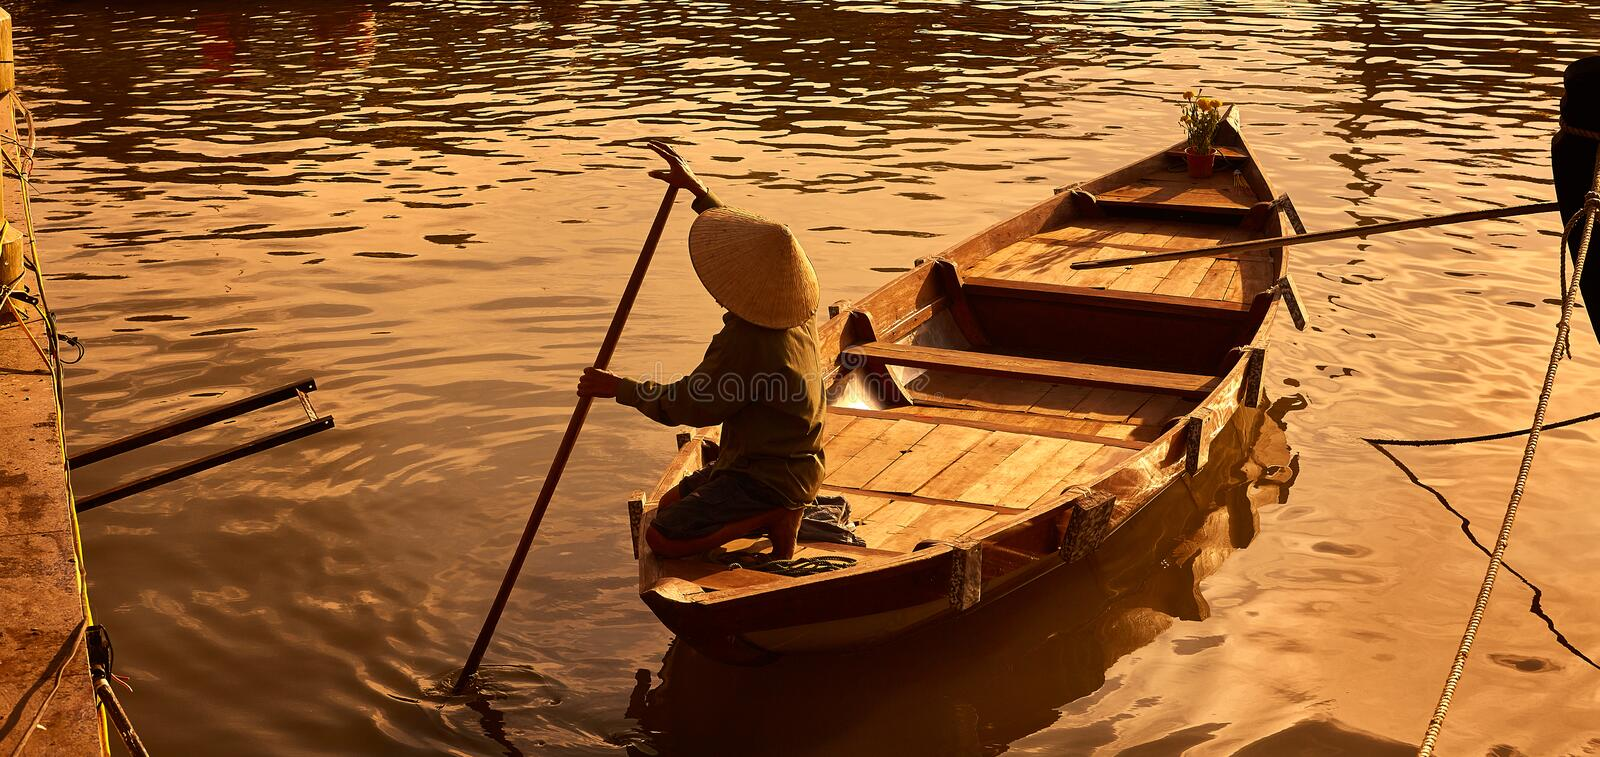 Boat paddler golden hour. A boat paddler in golden hour work hard to attract their customers for memorable and relaxing moment boat ride in Hoi An ancient town royalty free stock image